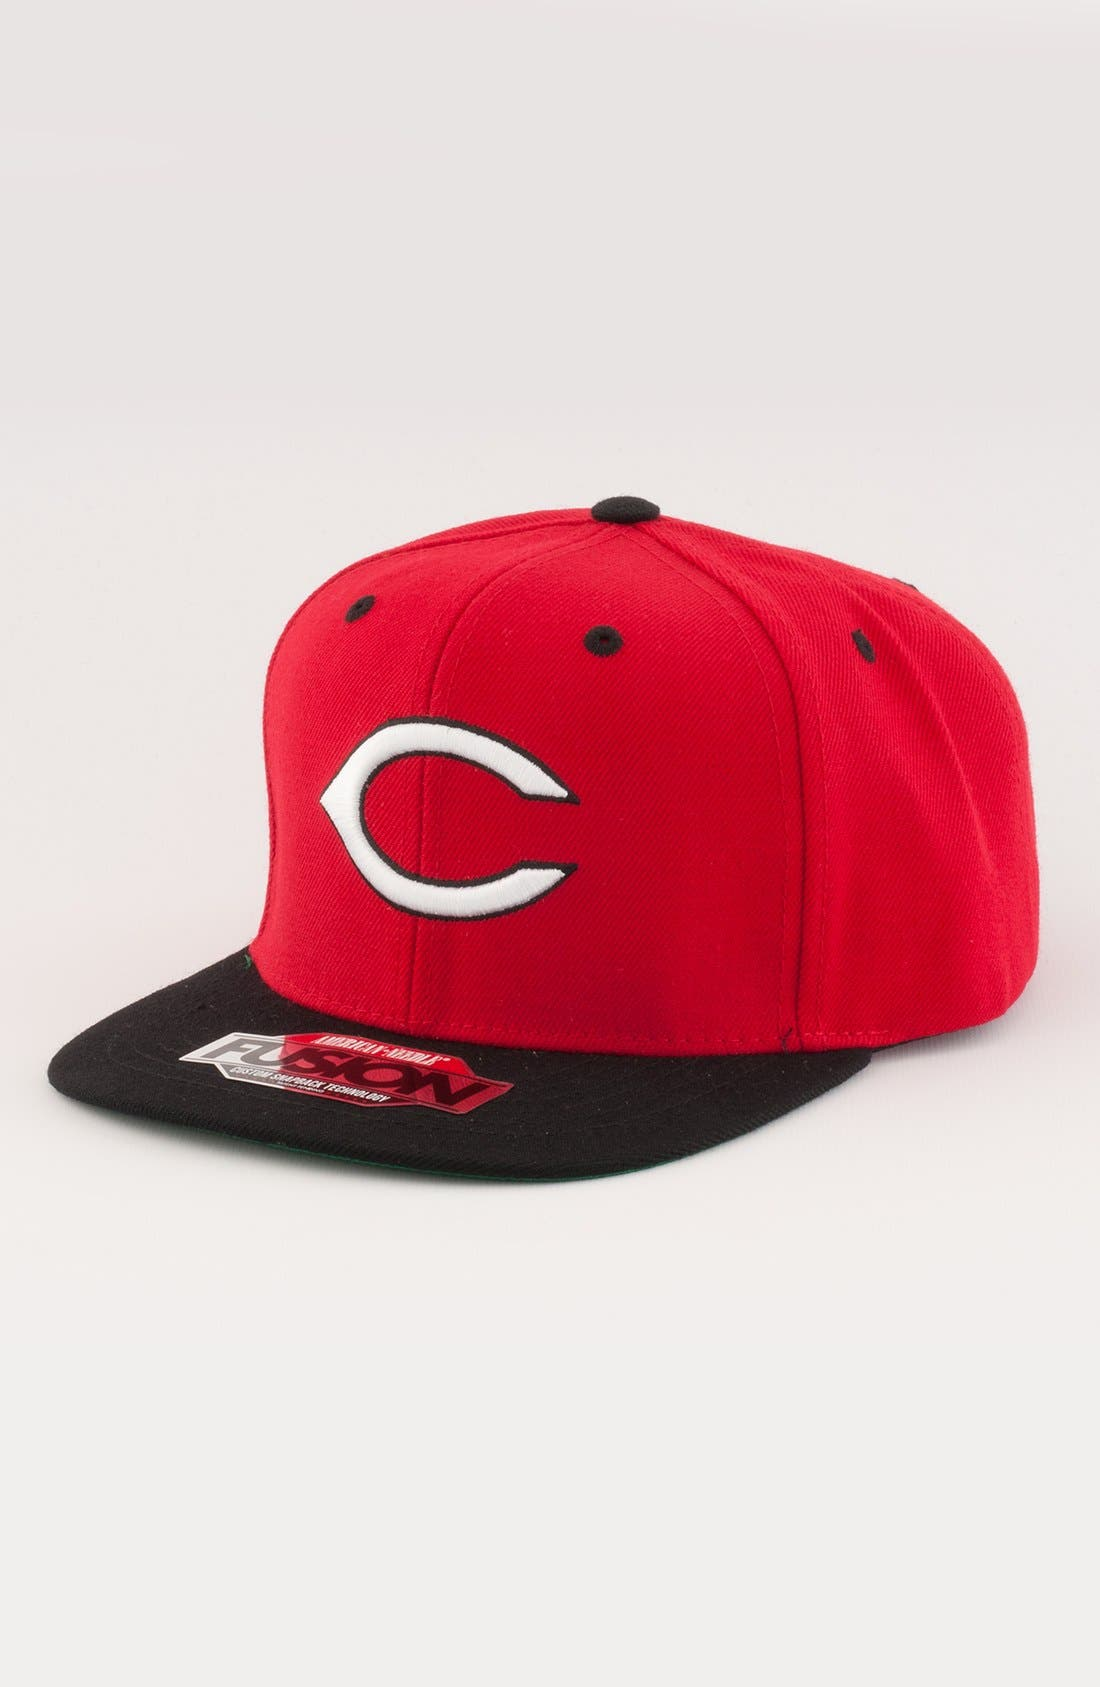 Alternate Image 1 Selected - American Needle 'Cincinnati Reds - Back 2 Front' Snapback Baseball Cap